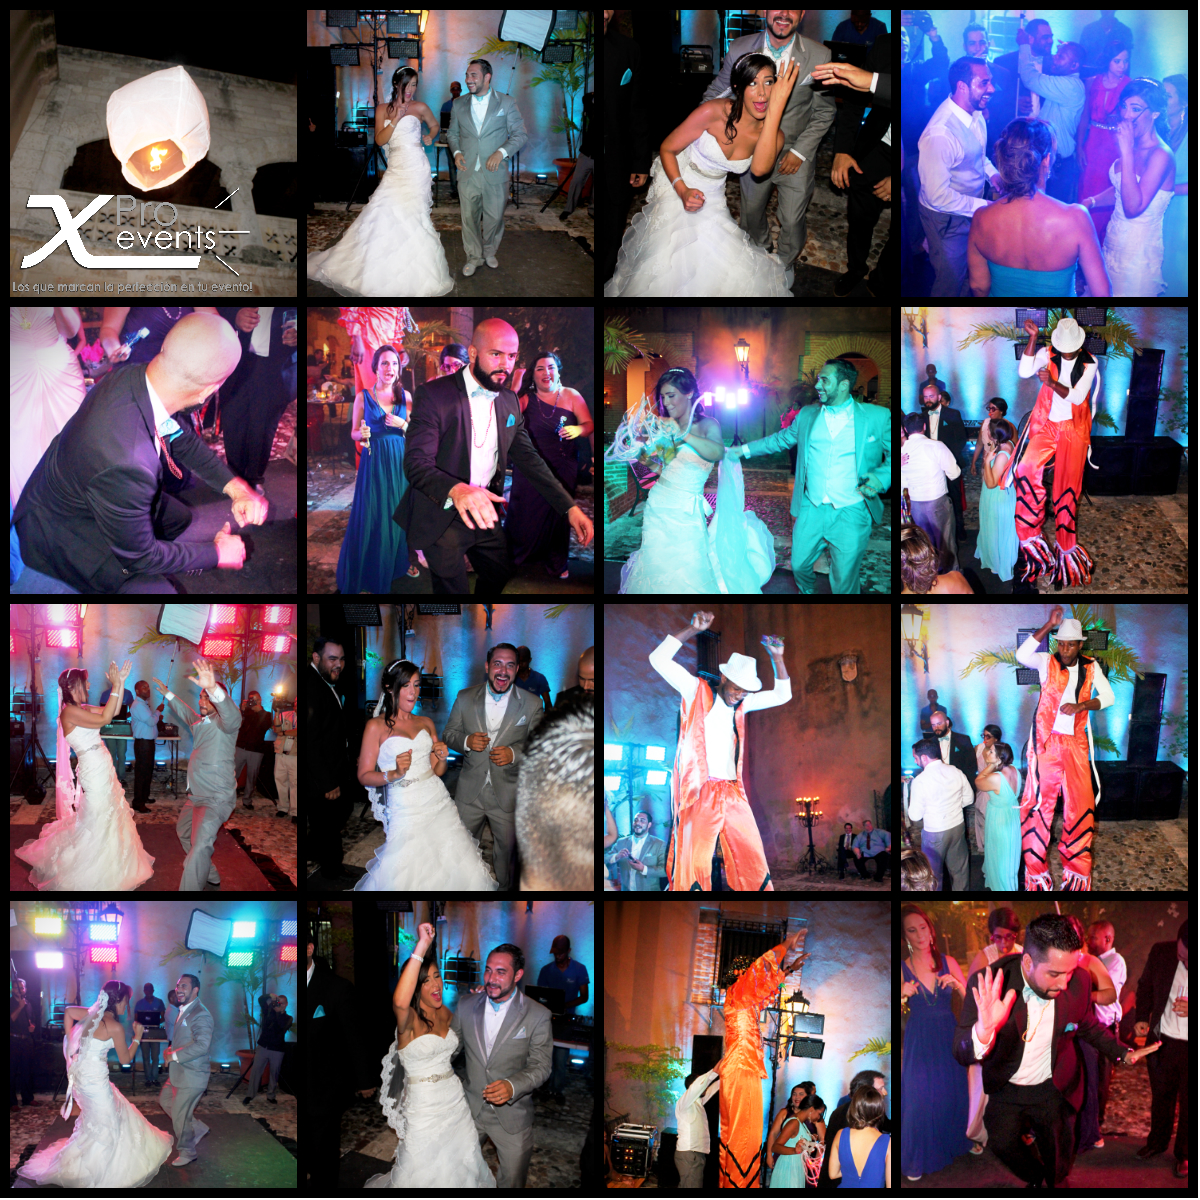 www.Xproevents.com - Jan Mario & Karla Collage 3.jpg